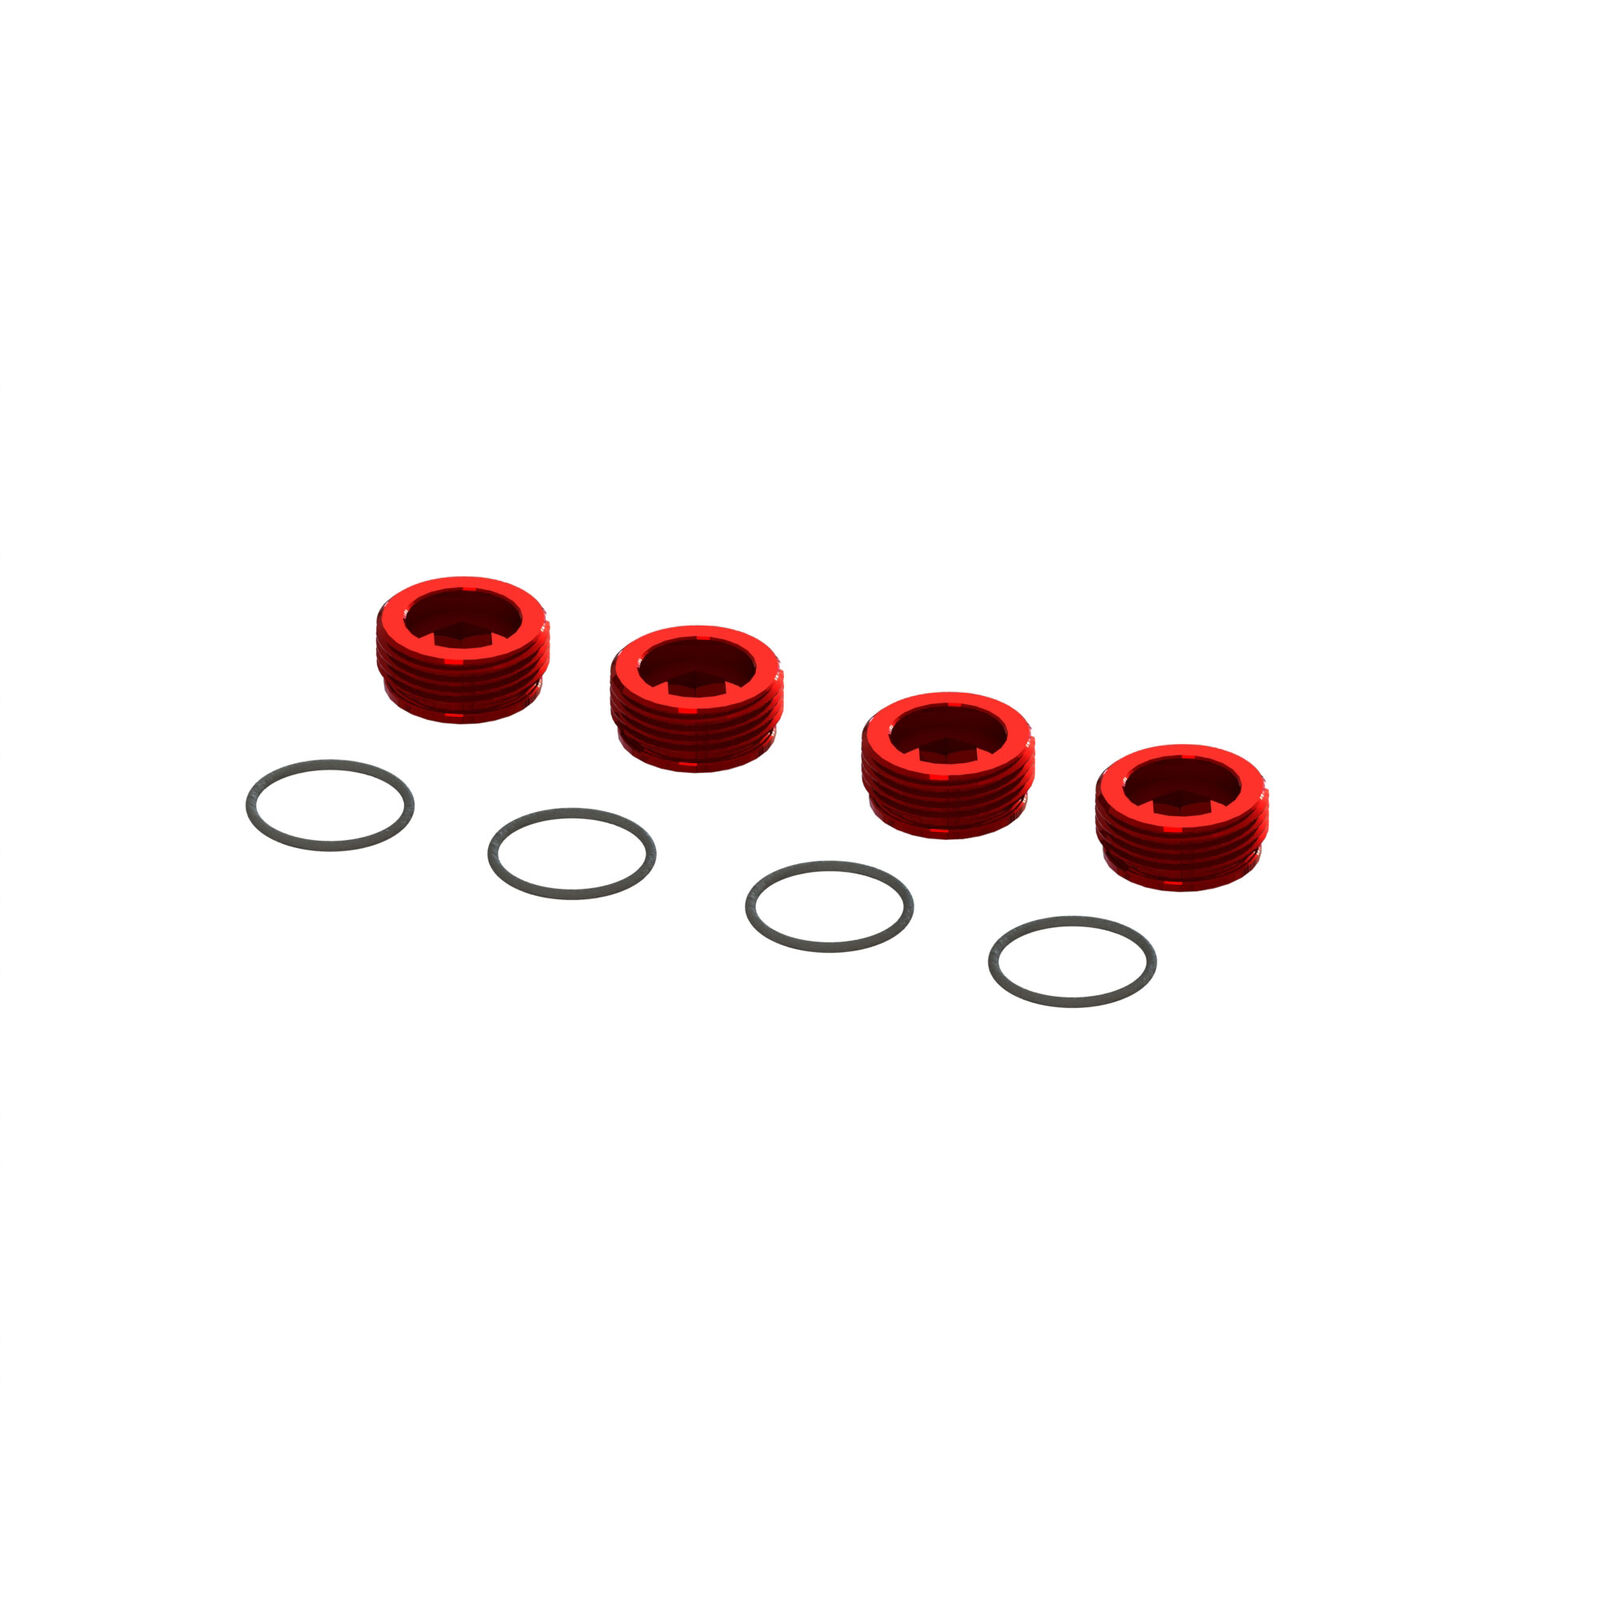 Aluminum Front Hub Nut Red (4) with O-Rings